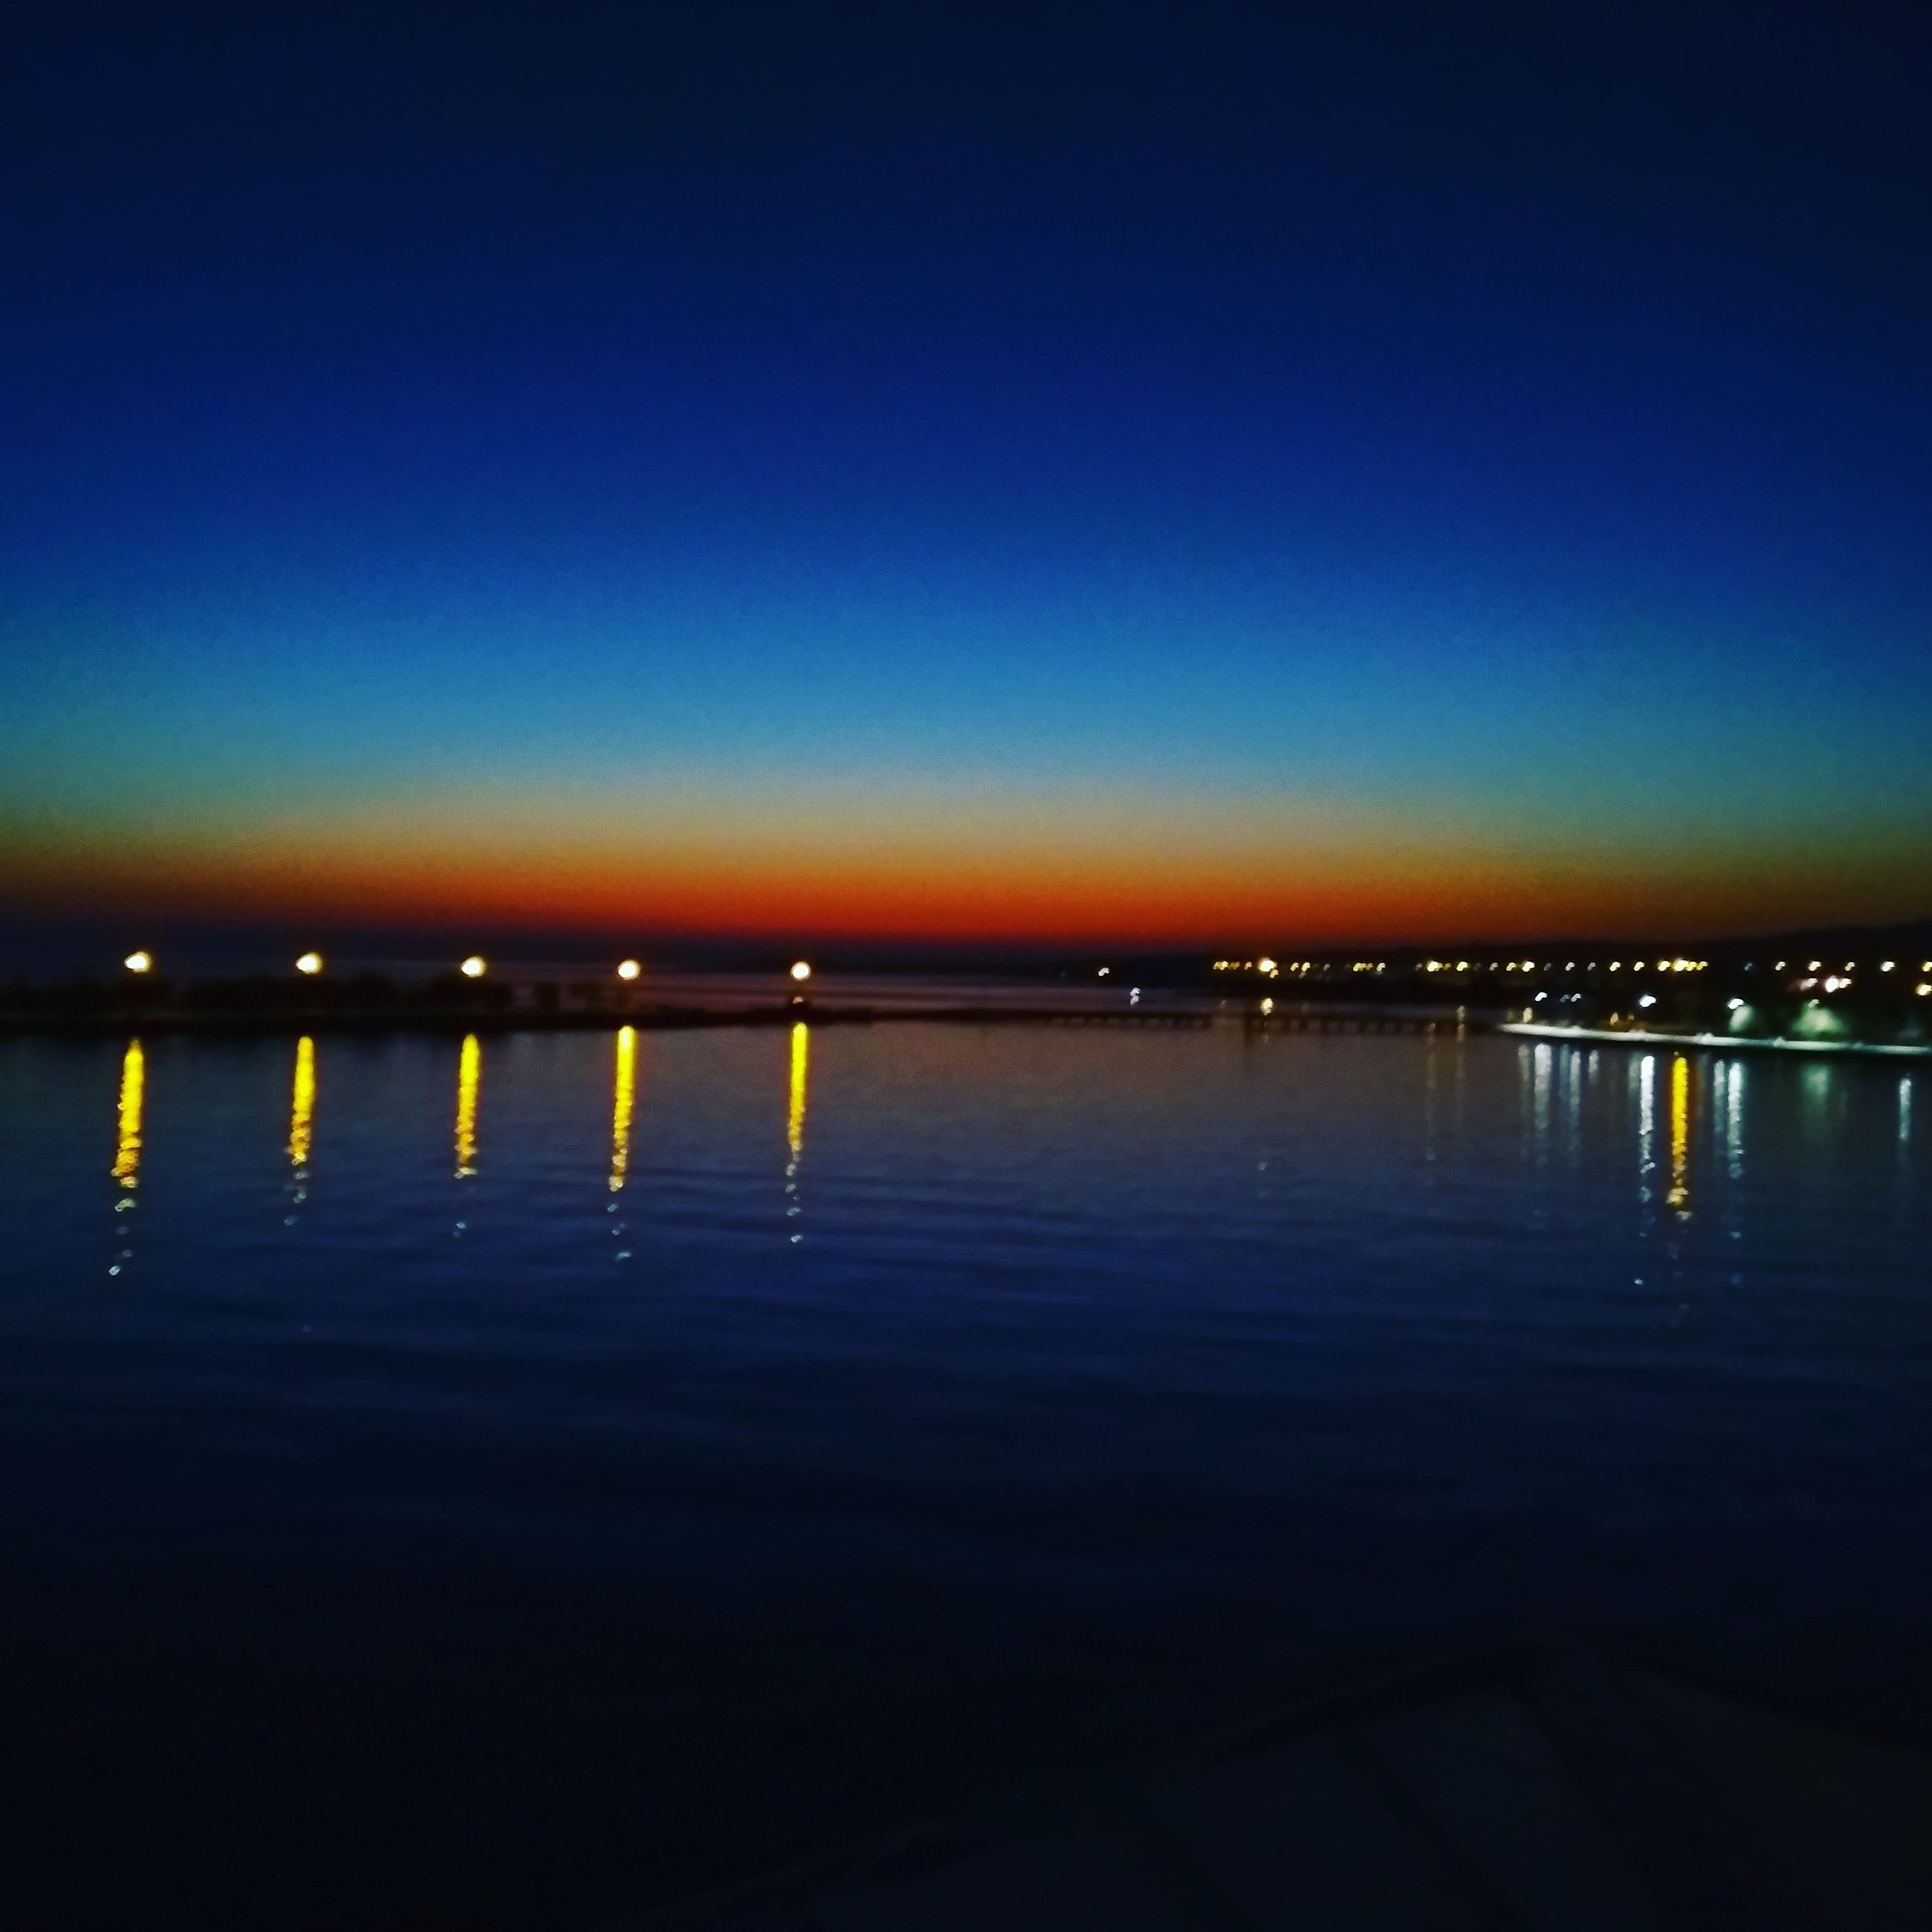 water, blue, reflection, night, no people, outdoors, illuminated, tranquility, waterfront, nature, sunset, clear sky, scenics, beauty in nature, architecture, sea, sky